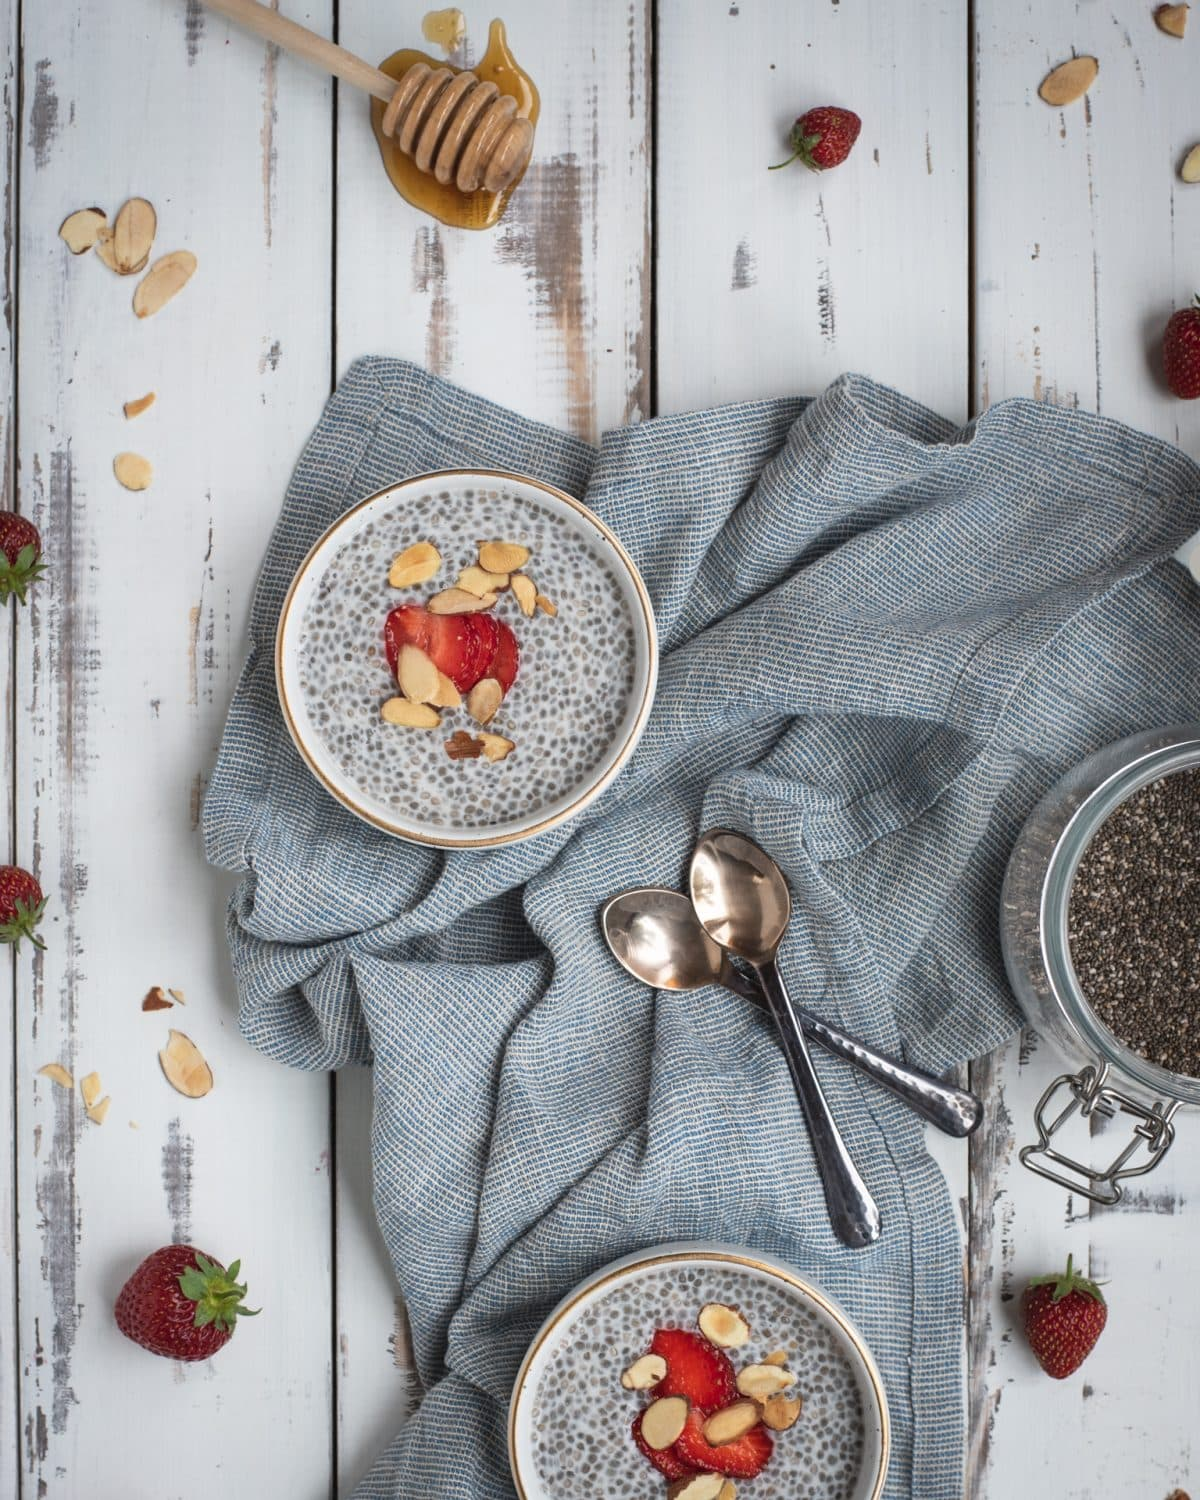 Overhead photo of almond chia seed pudding